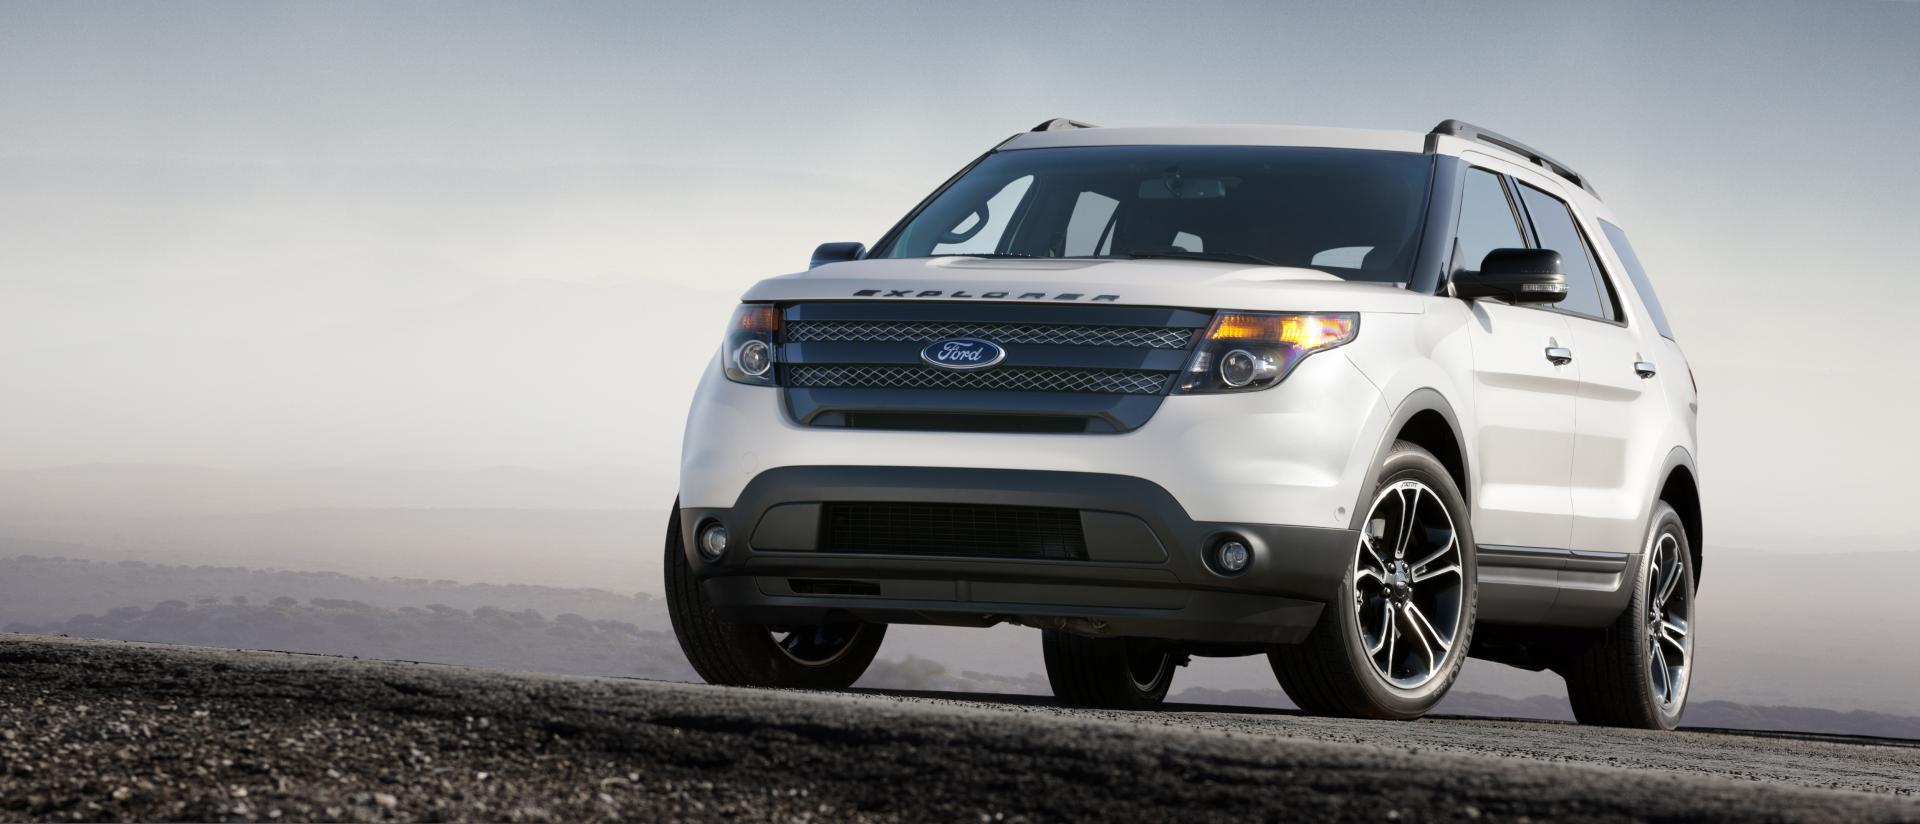 the towing capacity of a 2014 ford explorer sport autos post. Black Bedroom Furniture Sets. Home Design Ideas